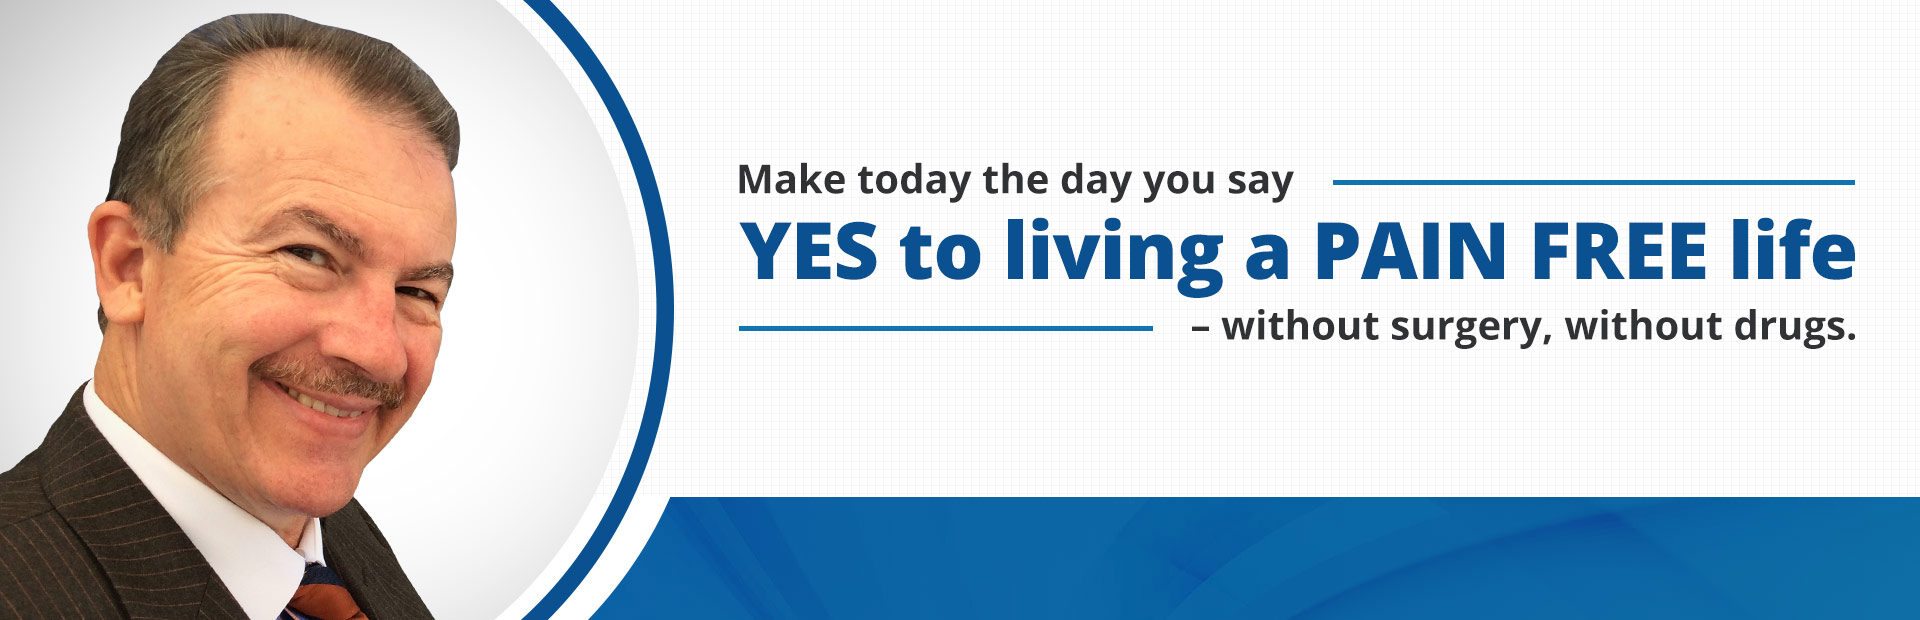 Make today the day you say YES to living a PAIN FREE life – without surgery, without drugs. Click here to contact us.